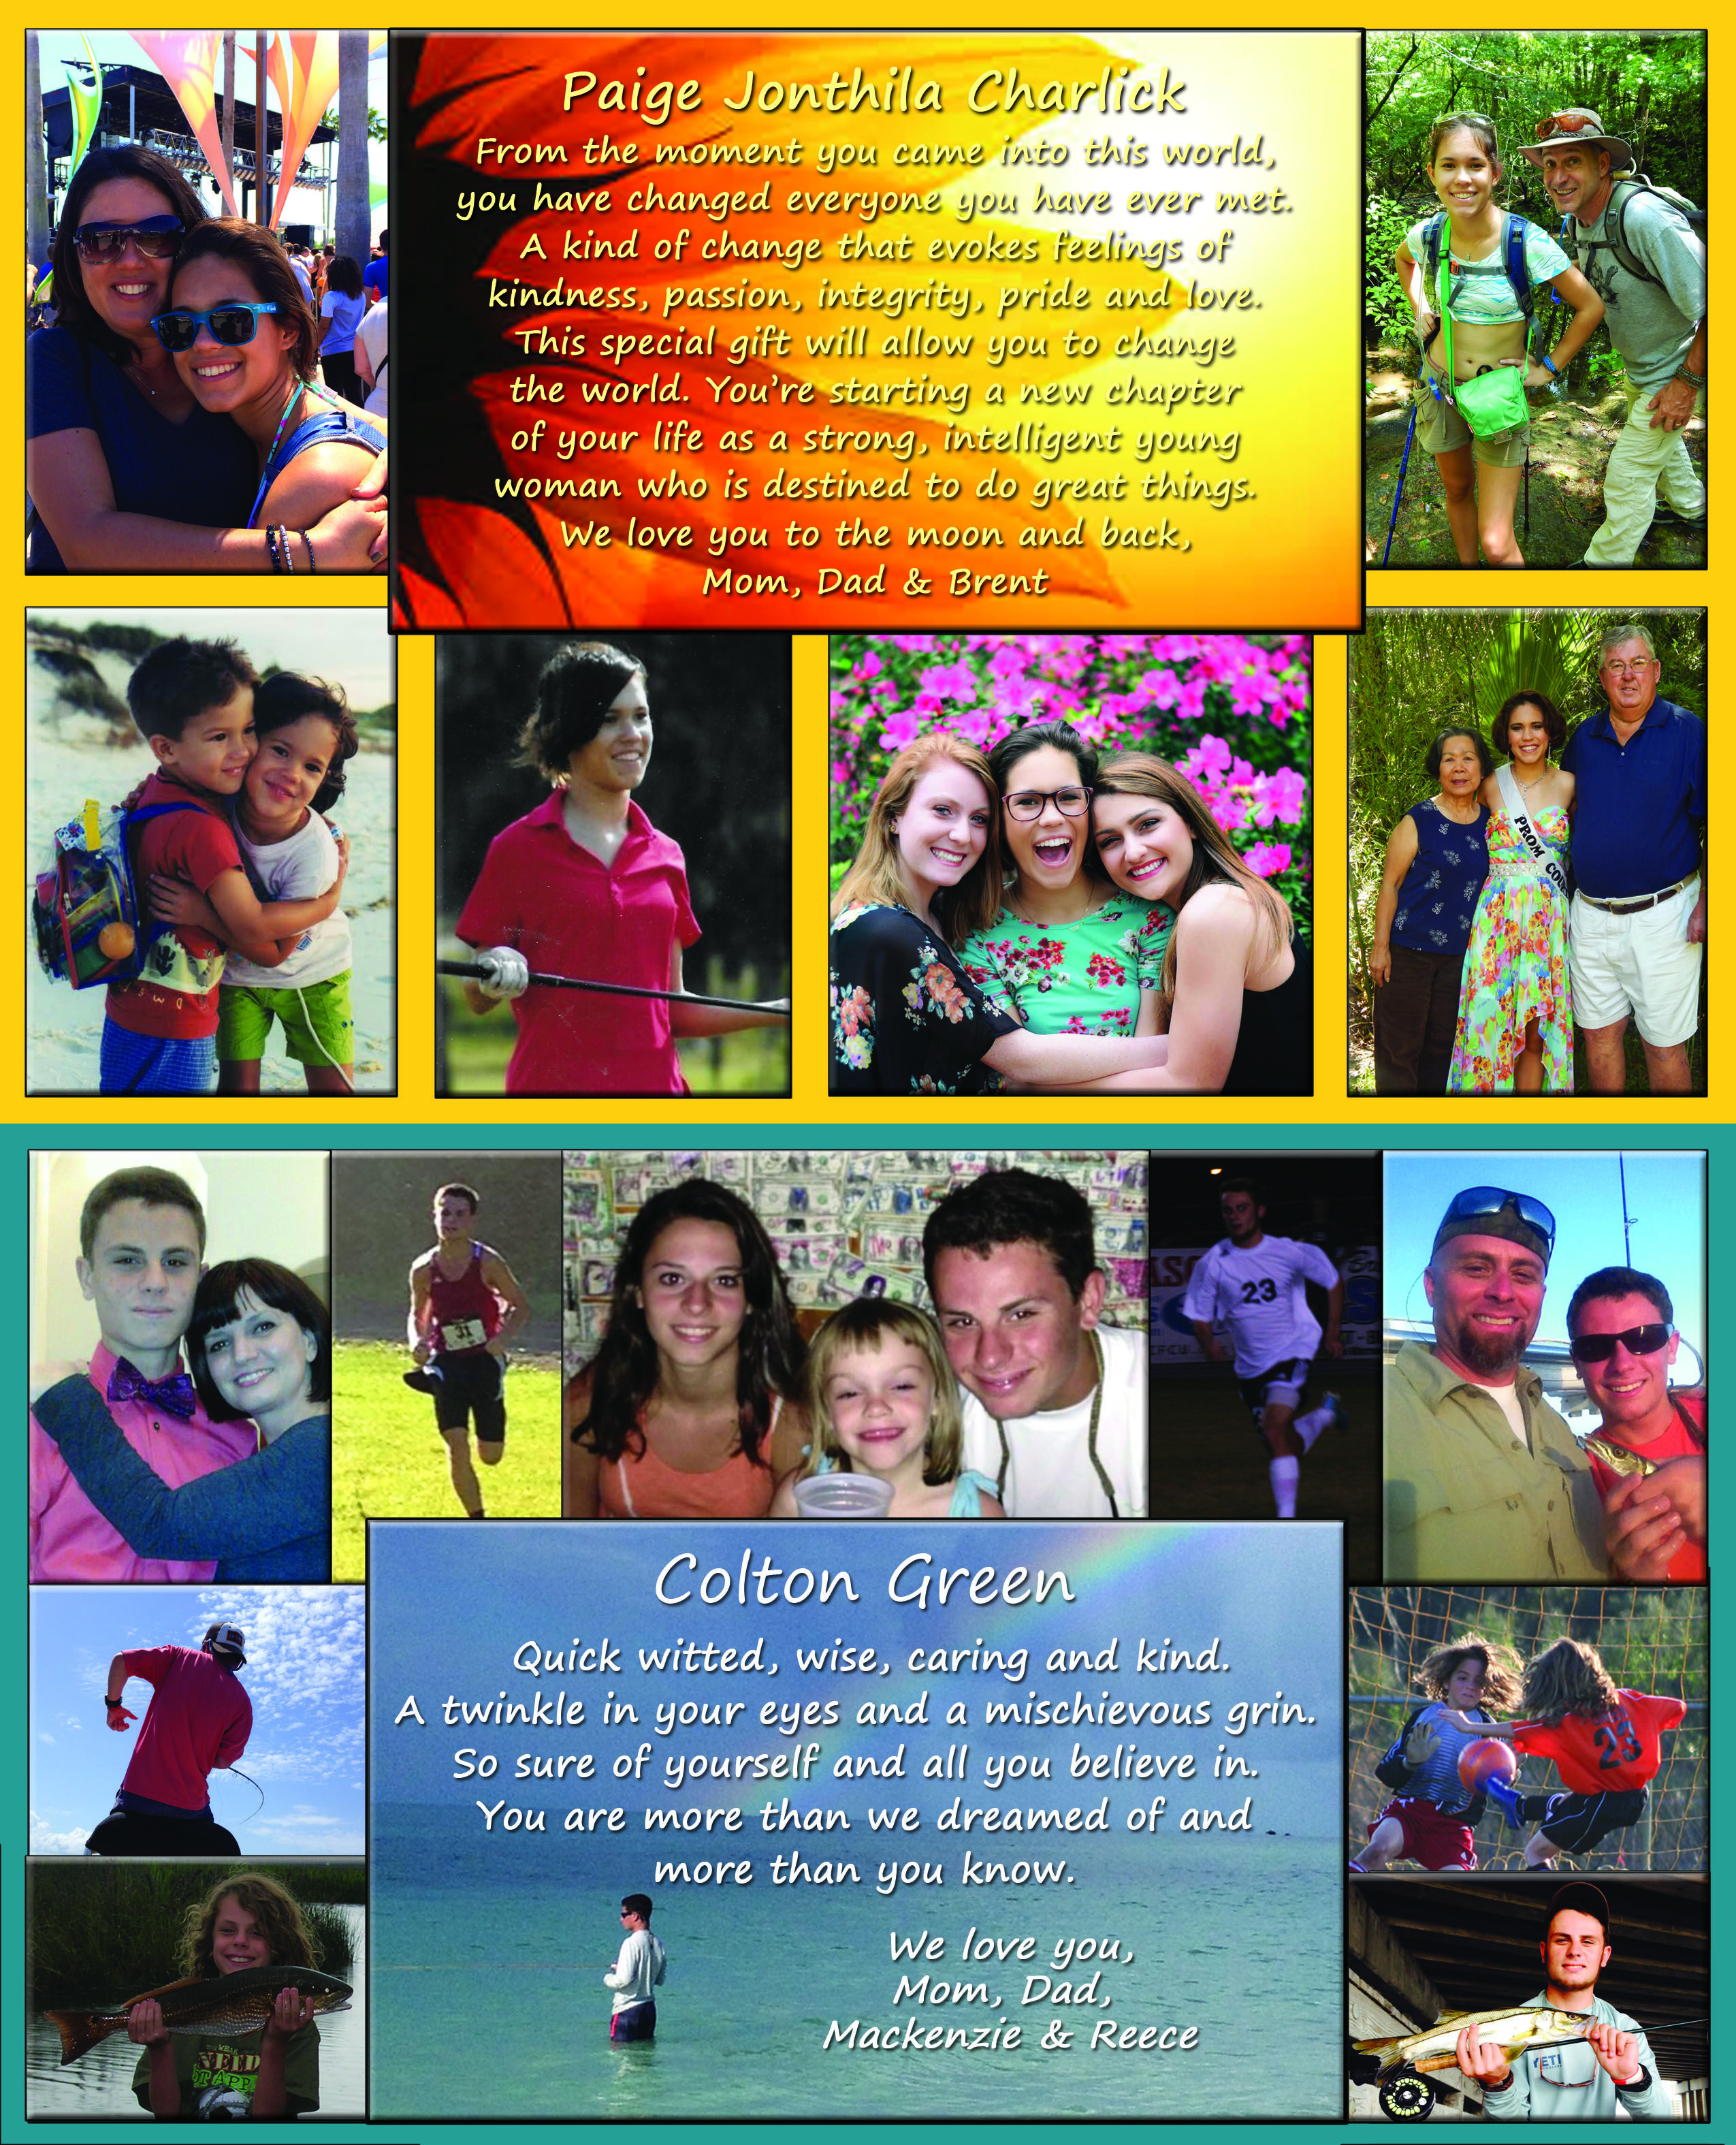 School Yearbook Page Layout Templates - Year of Clean Water